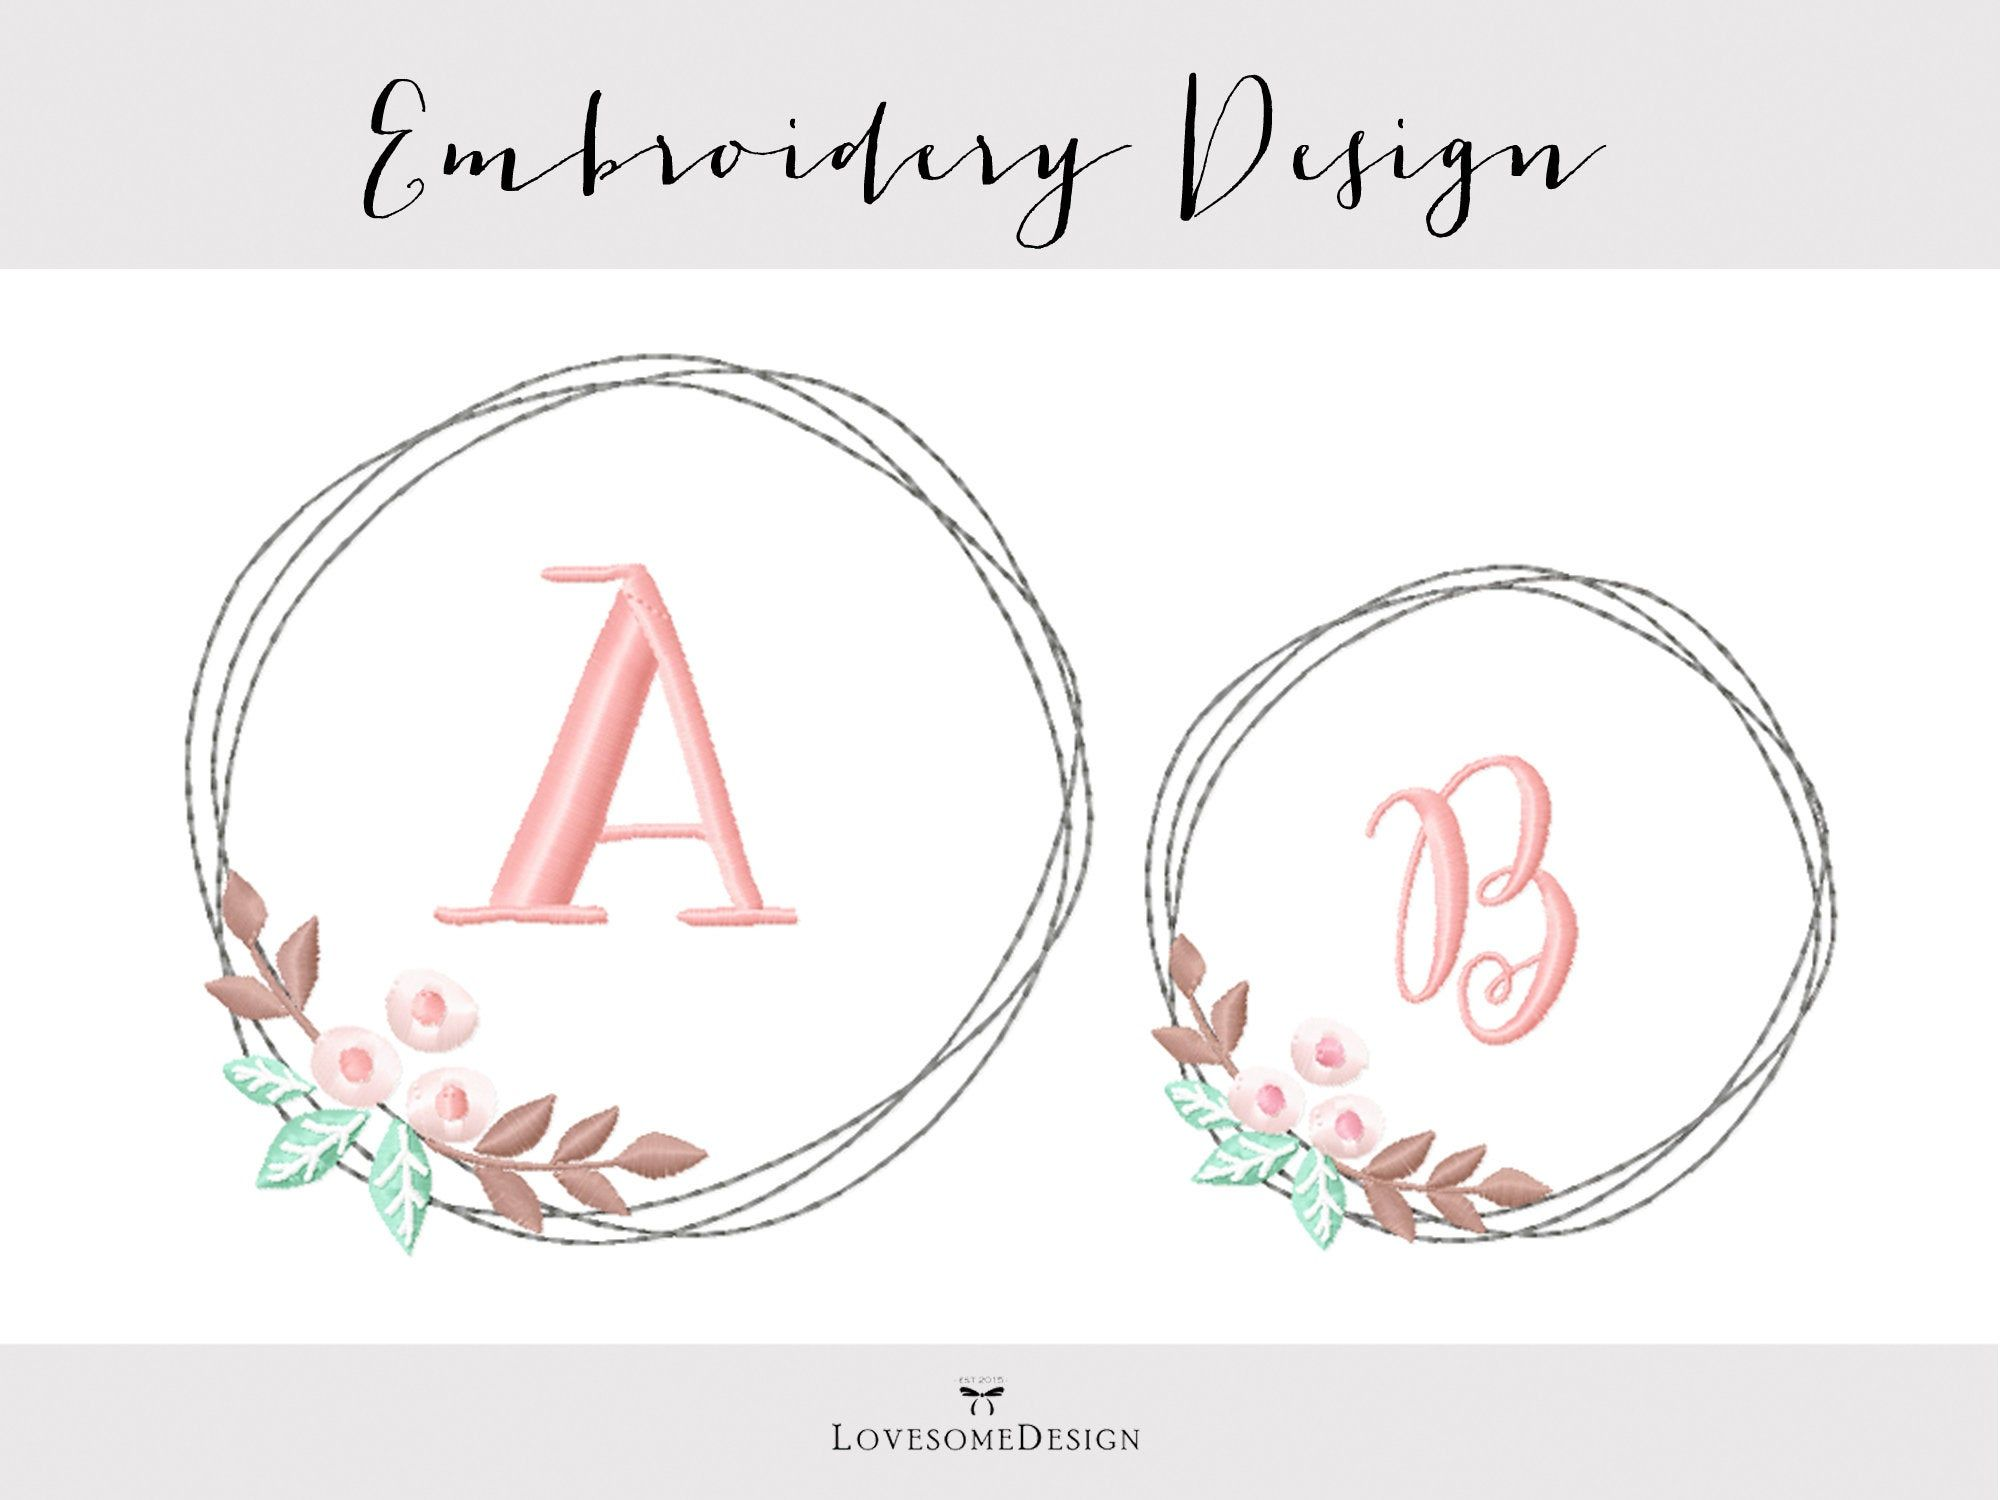 Photo of Floral Wreath Embroidery Design Two Sizes, Modern Embroidery Design, Wreath Embroidery, Laurel Embroidery Design, Wreath for Monograms